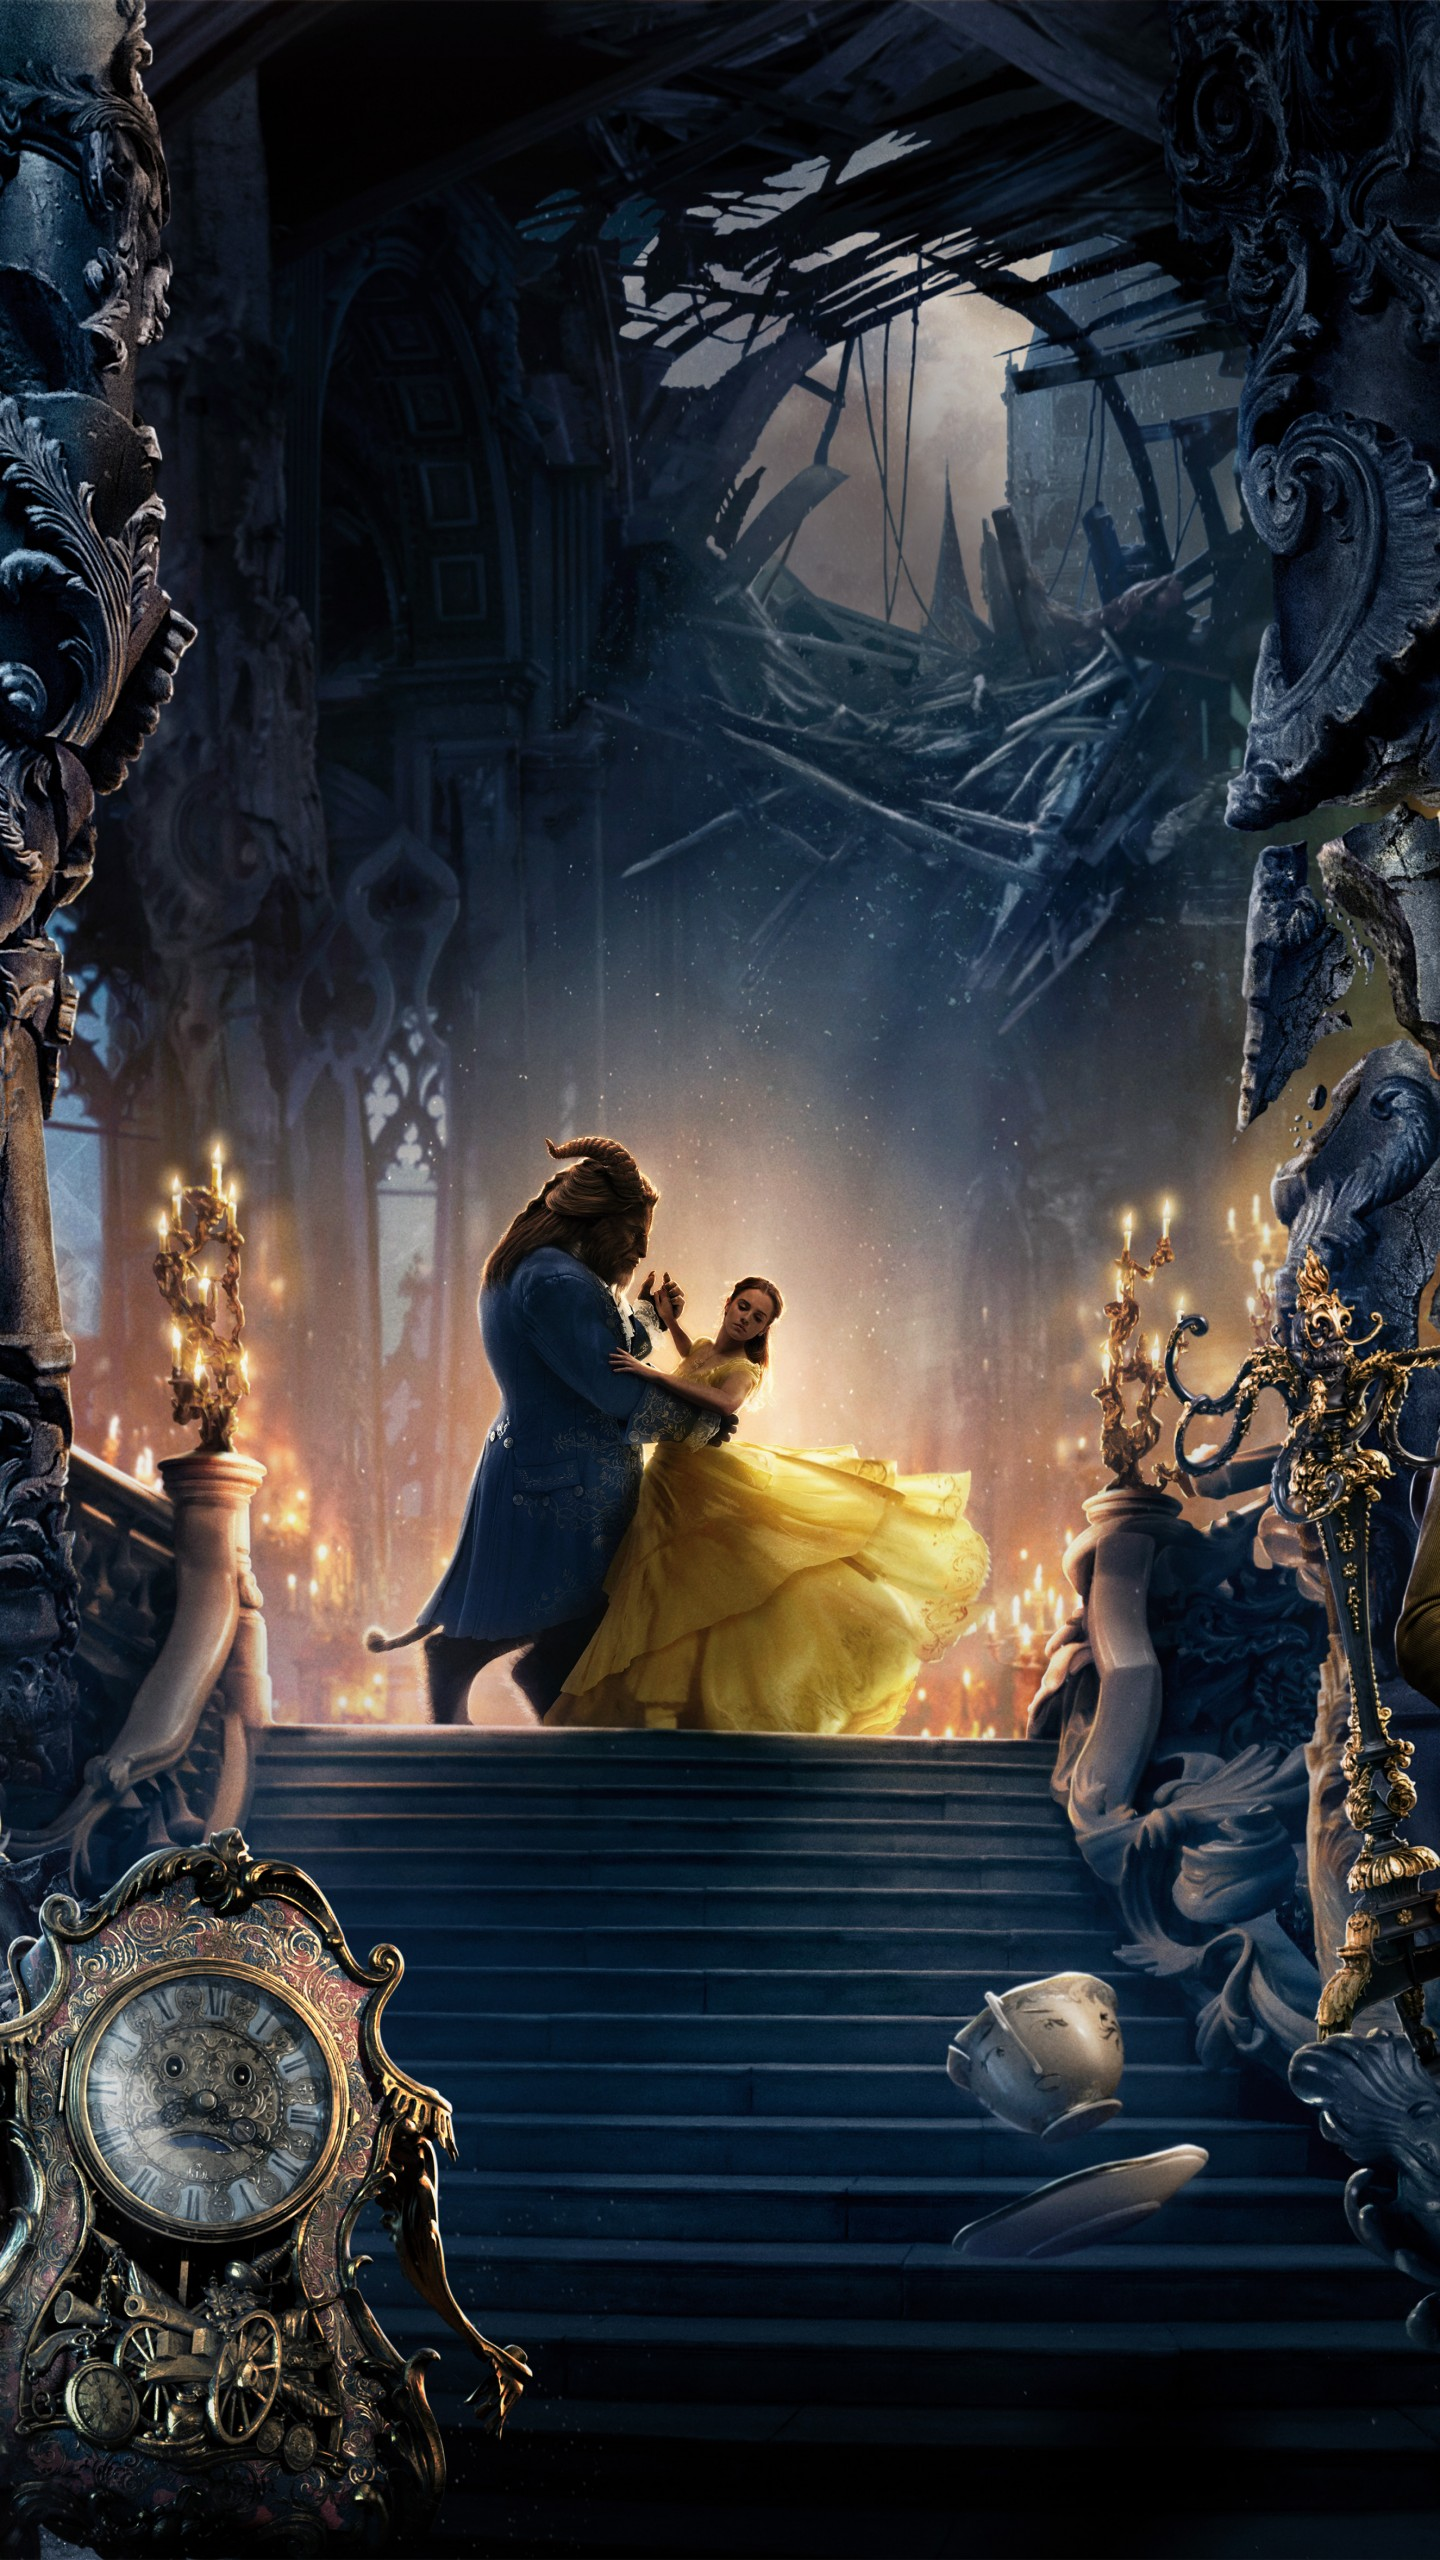 disney beauty and the beast poster 1440x2560 wallpaper teahub io disney beauty and the beast poster